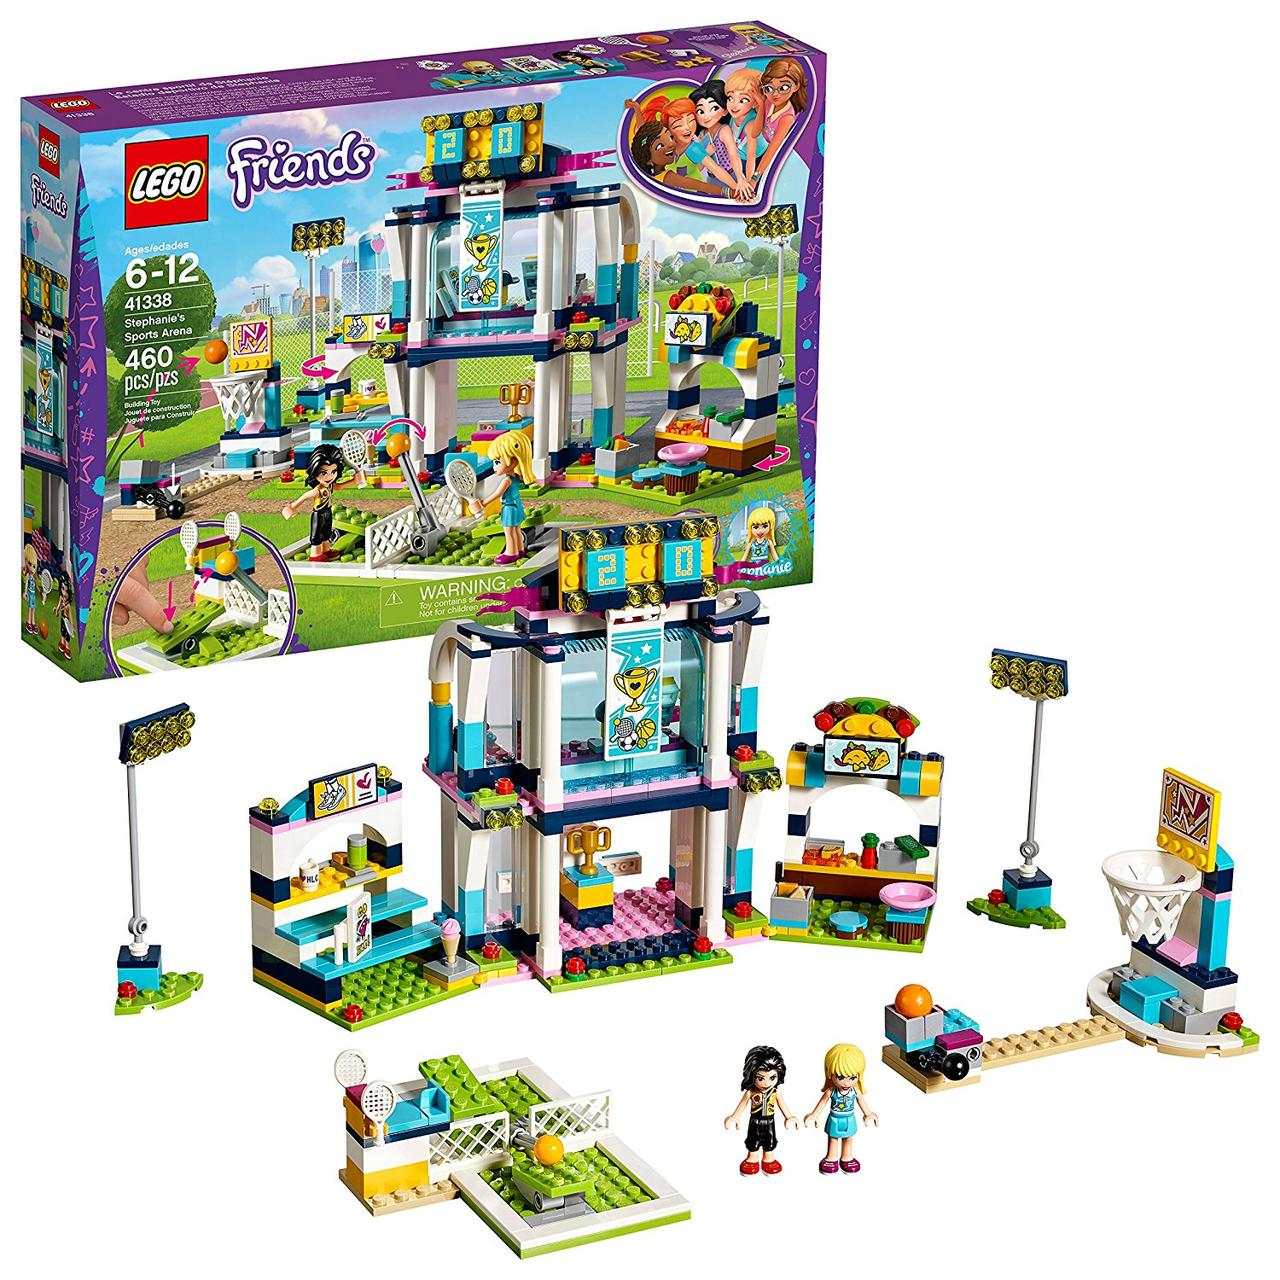 Lego Friends 41338 Stephanies Sports Arena. Стадіон Стефані (Конструктор Лего Френдс Стадион Стефани)